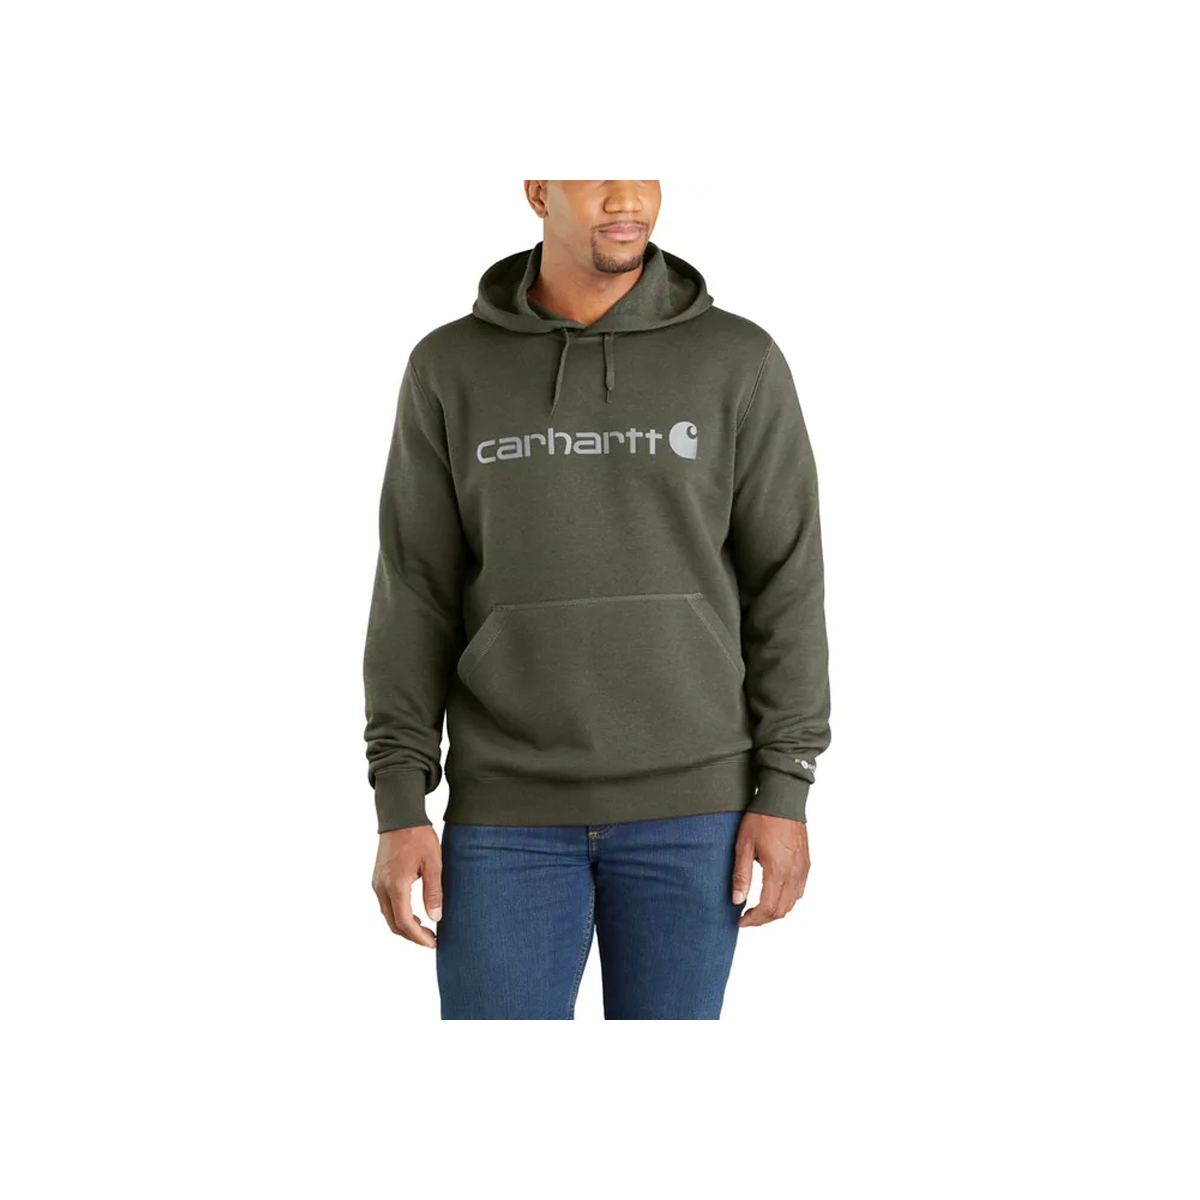 Men's Delmont Signature Graphic Hoodie, Green, swatch